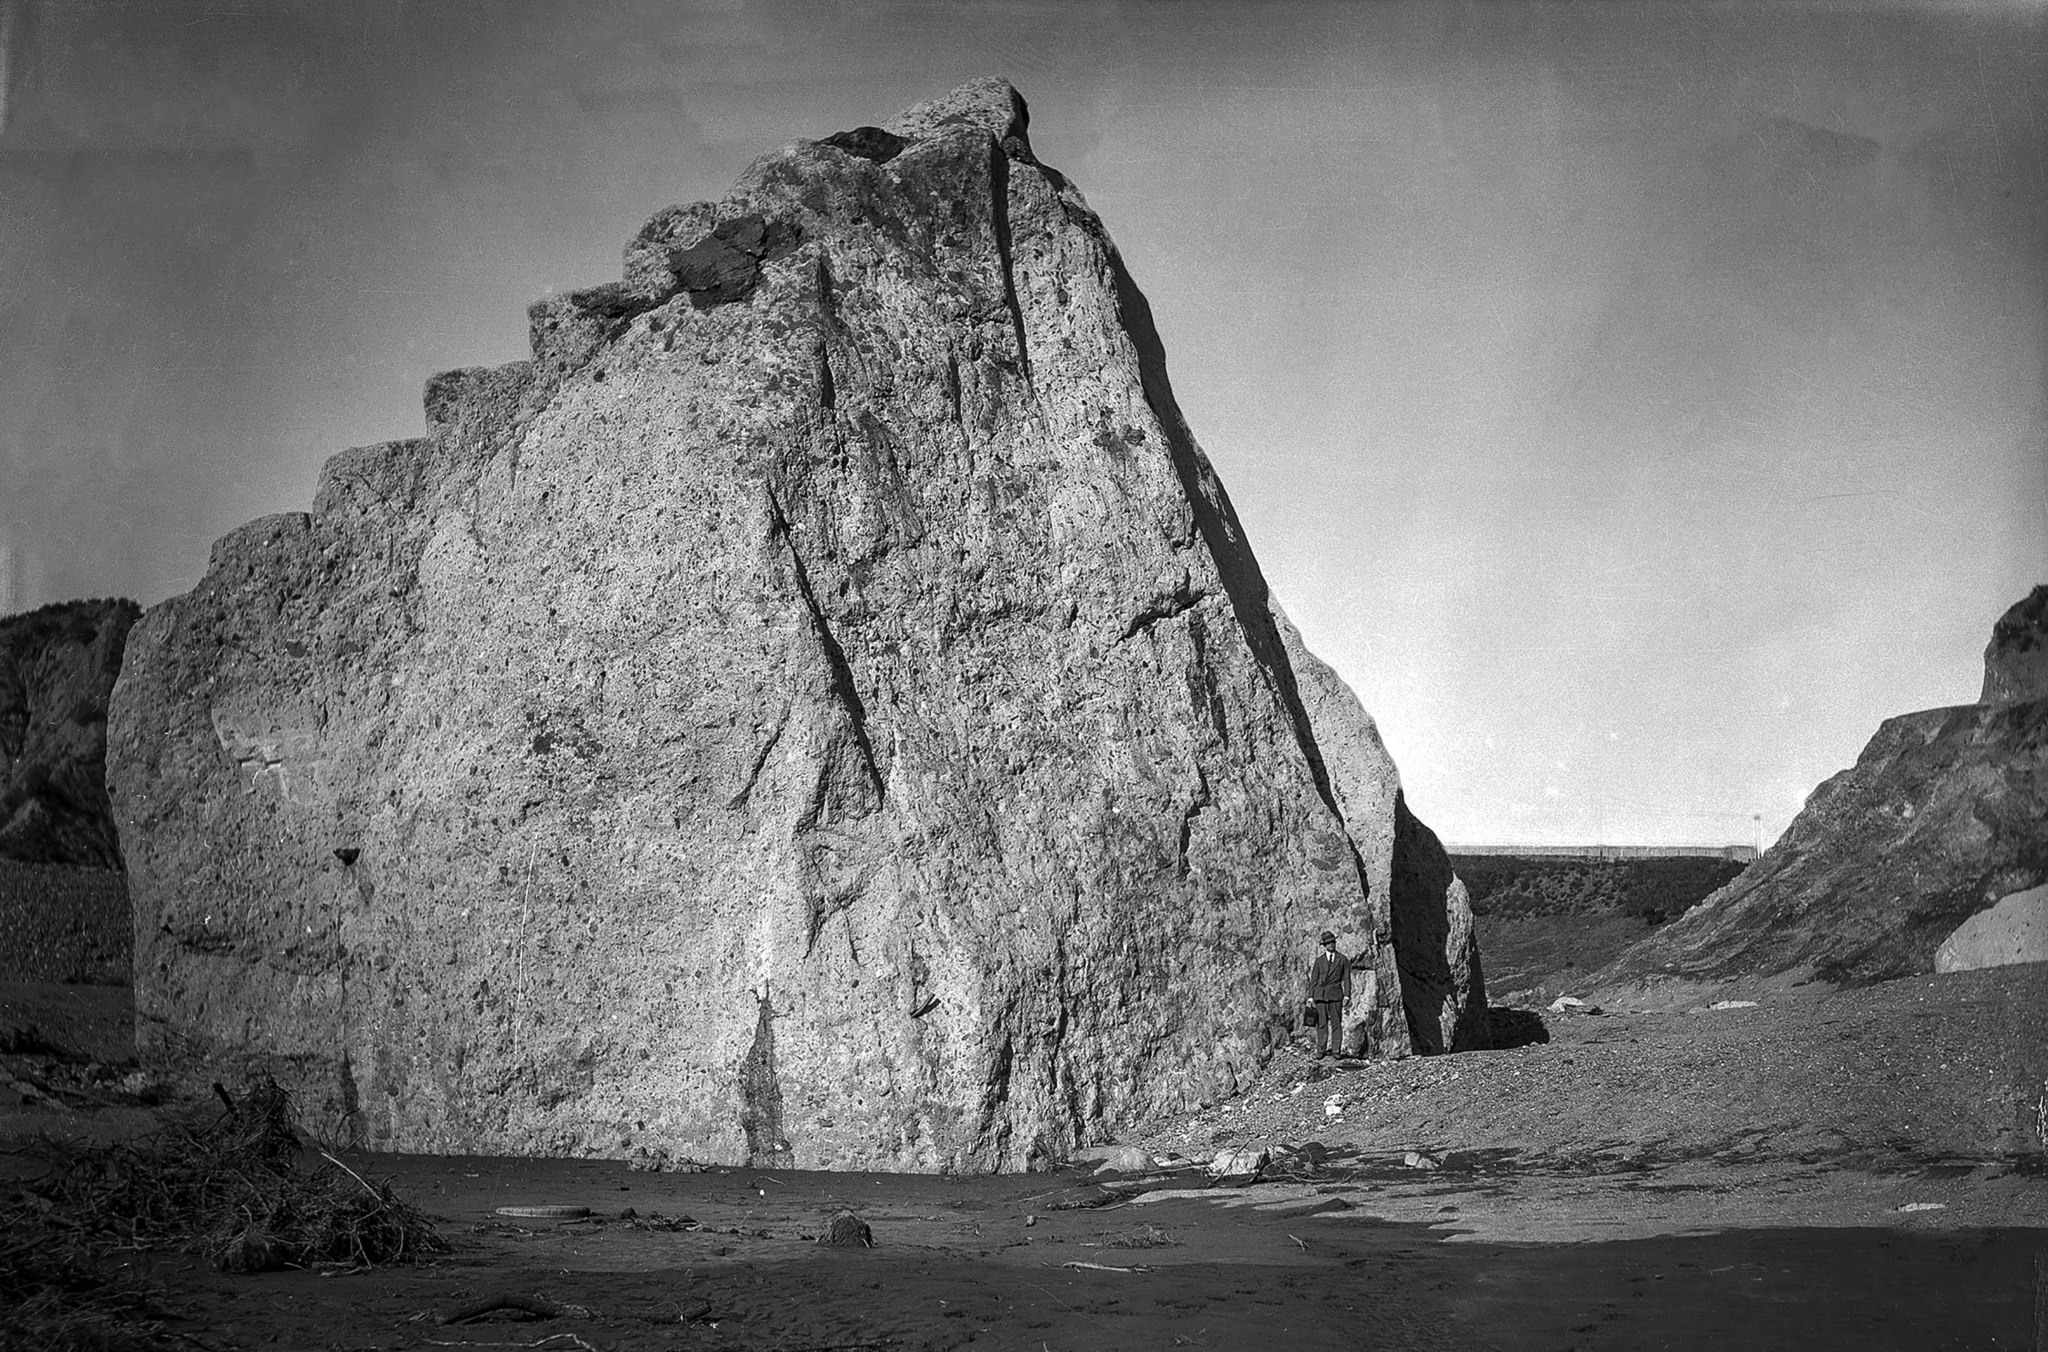 March 15, 1928: A large section of concrete block from St. Francis Dam sits about three-fourths a mi